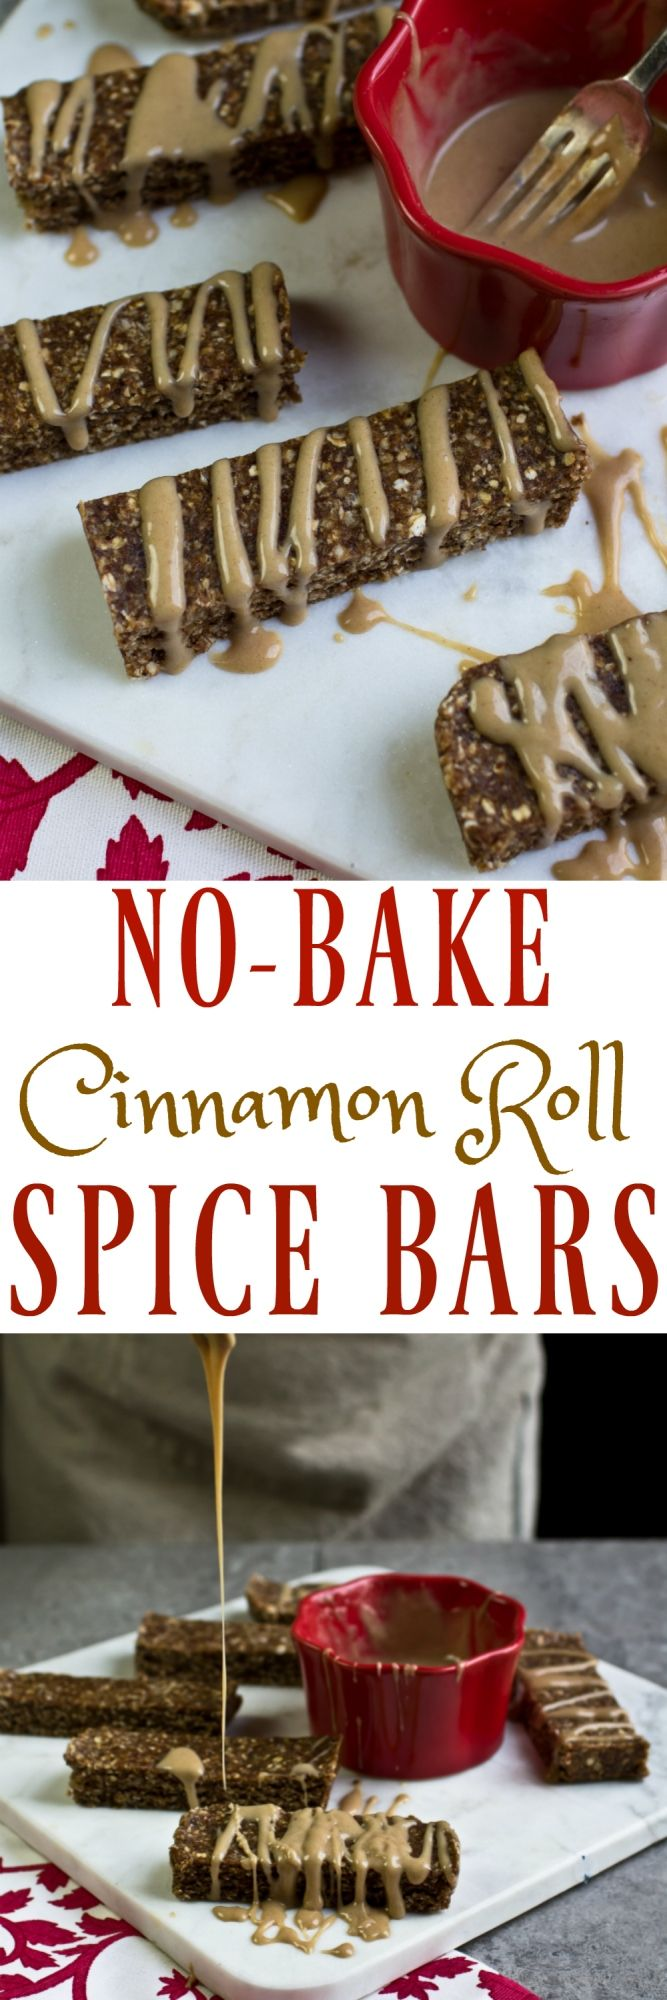 These delicious No-Bake Cinnamon Roll Spice Bars are vegan, gluten-free, oil-free and made with whole food ingredients like almonds, cashews, flaxseed and natural maple syrup. They are a much healthier alternative than a cinnamon roll, but still delicious! Just 8 ingredients, including the drizzle (+ water & salt)! via @thevegan8